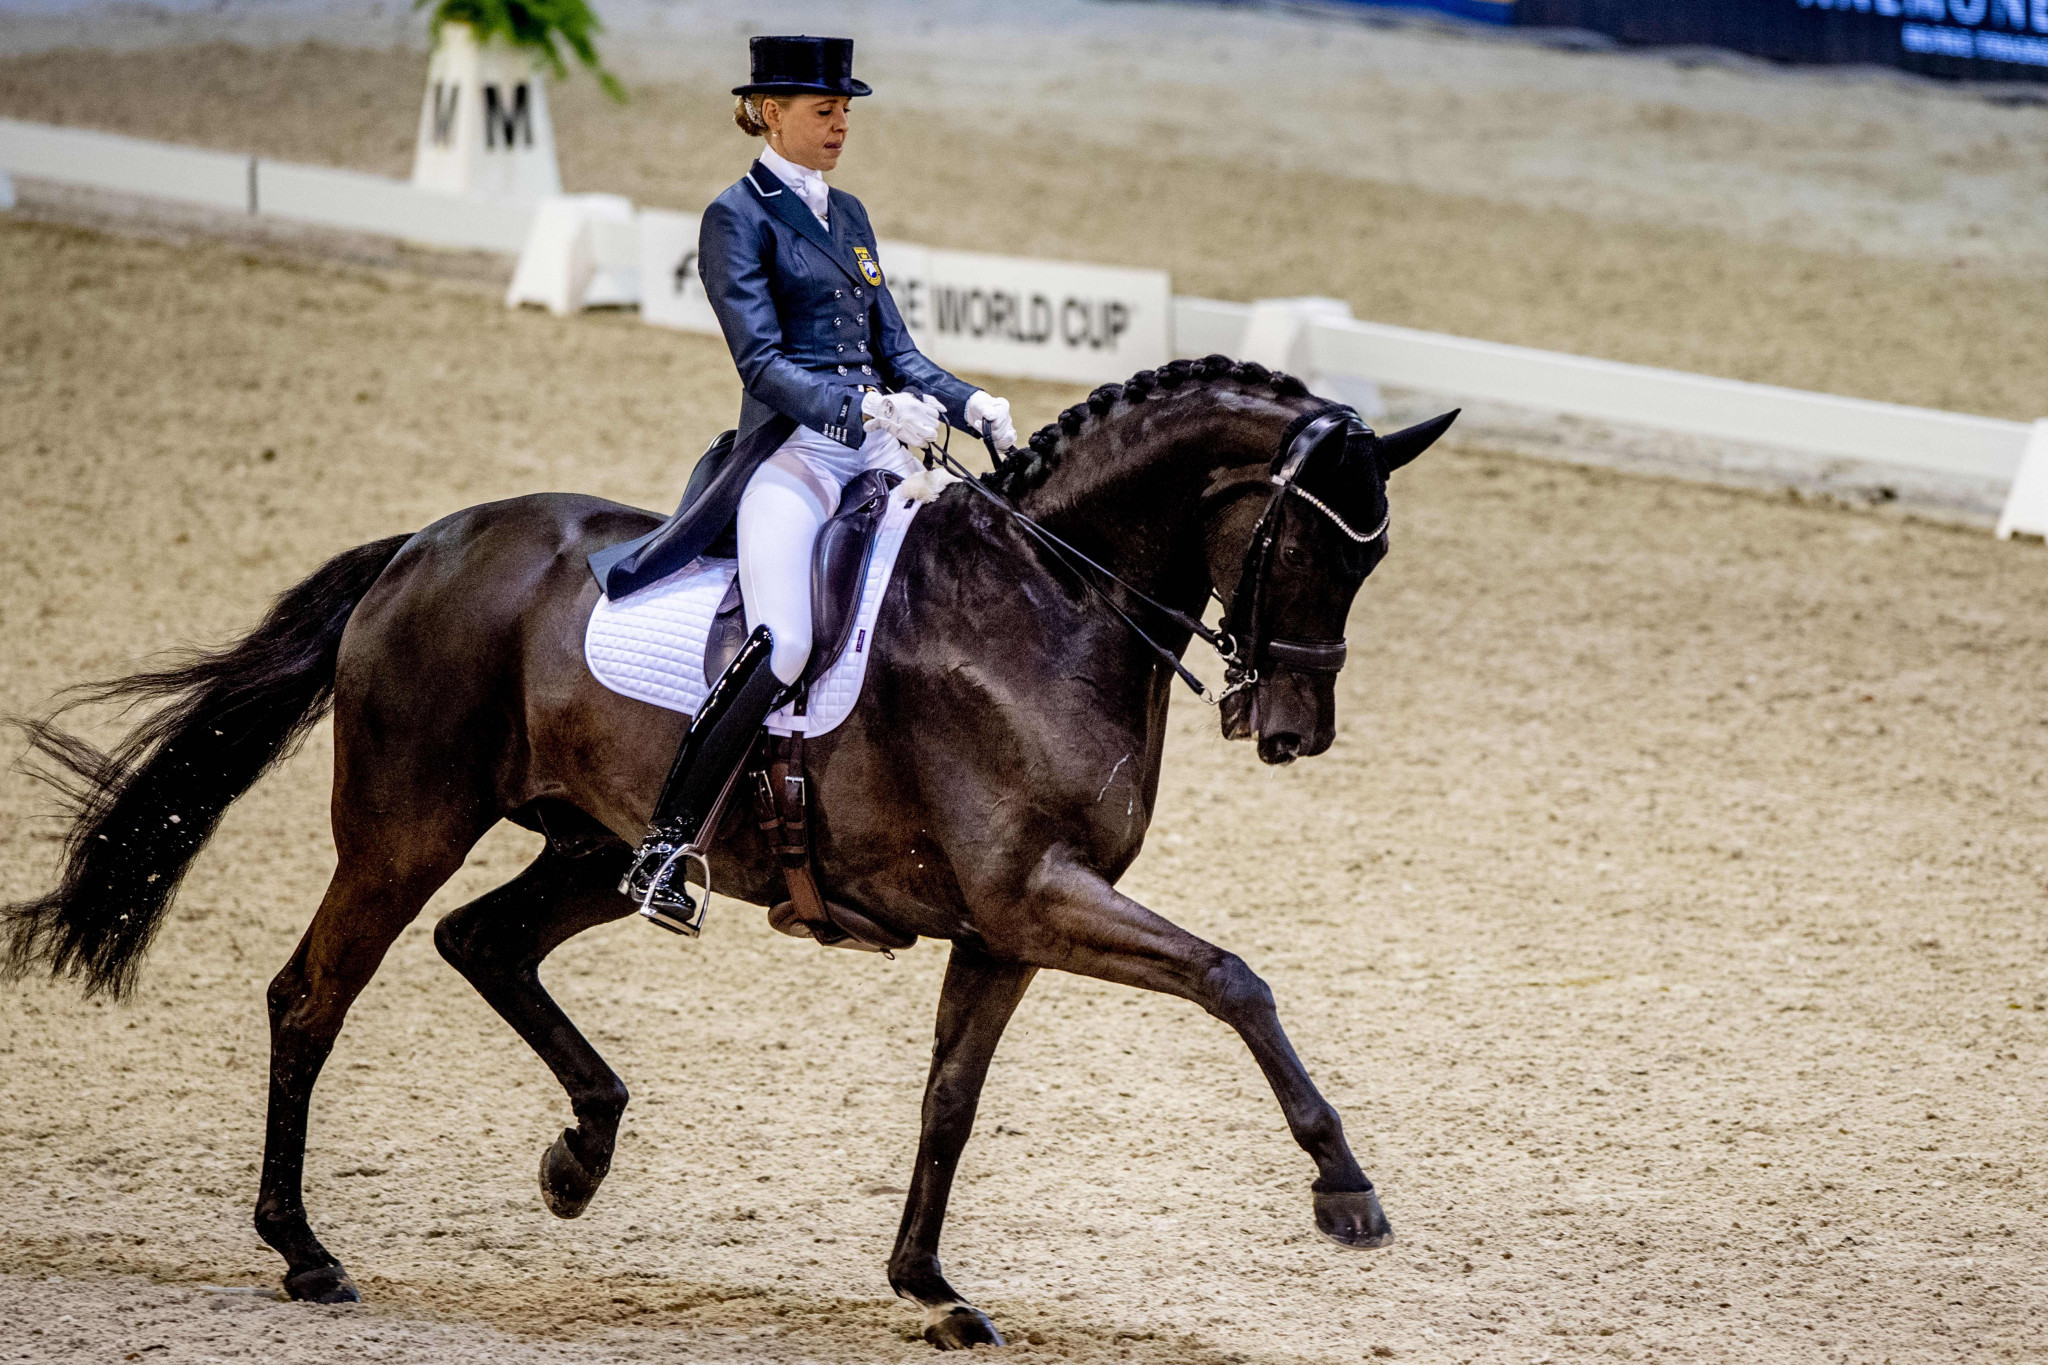 Sweden seek to maintain overall lead as FEI Dressage Nations Cup moves on to Aachen